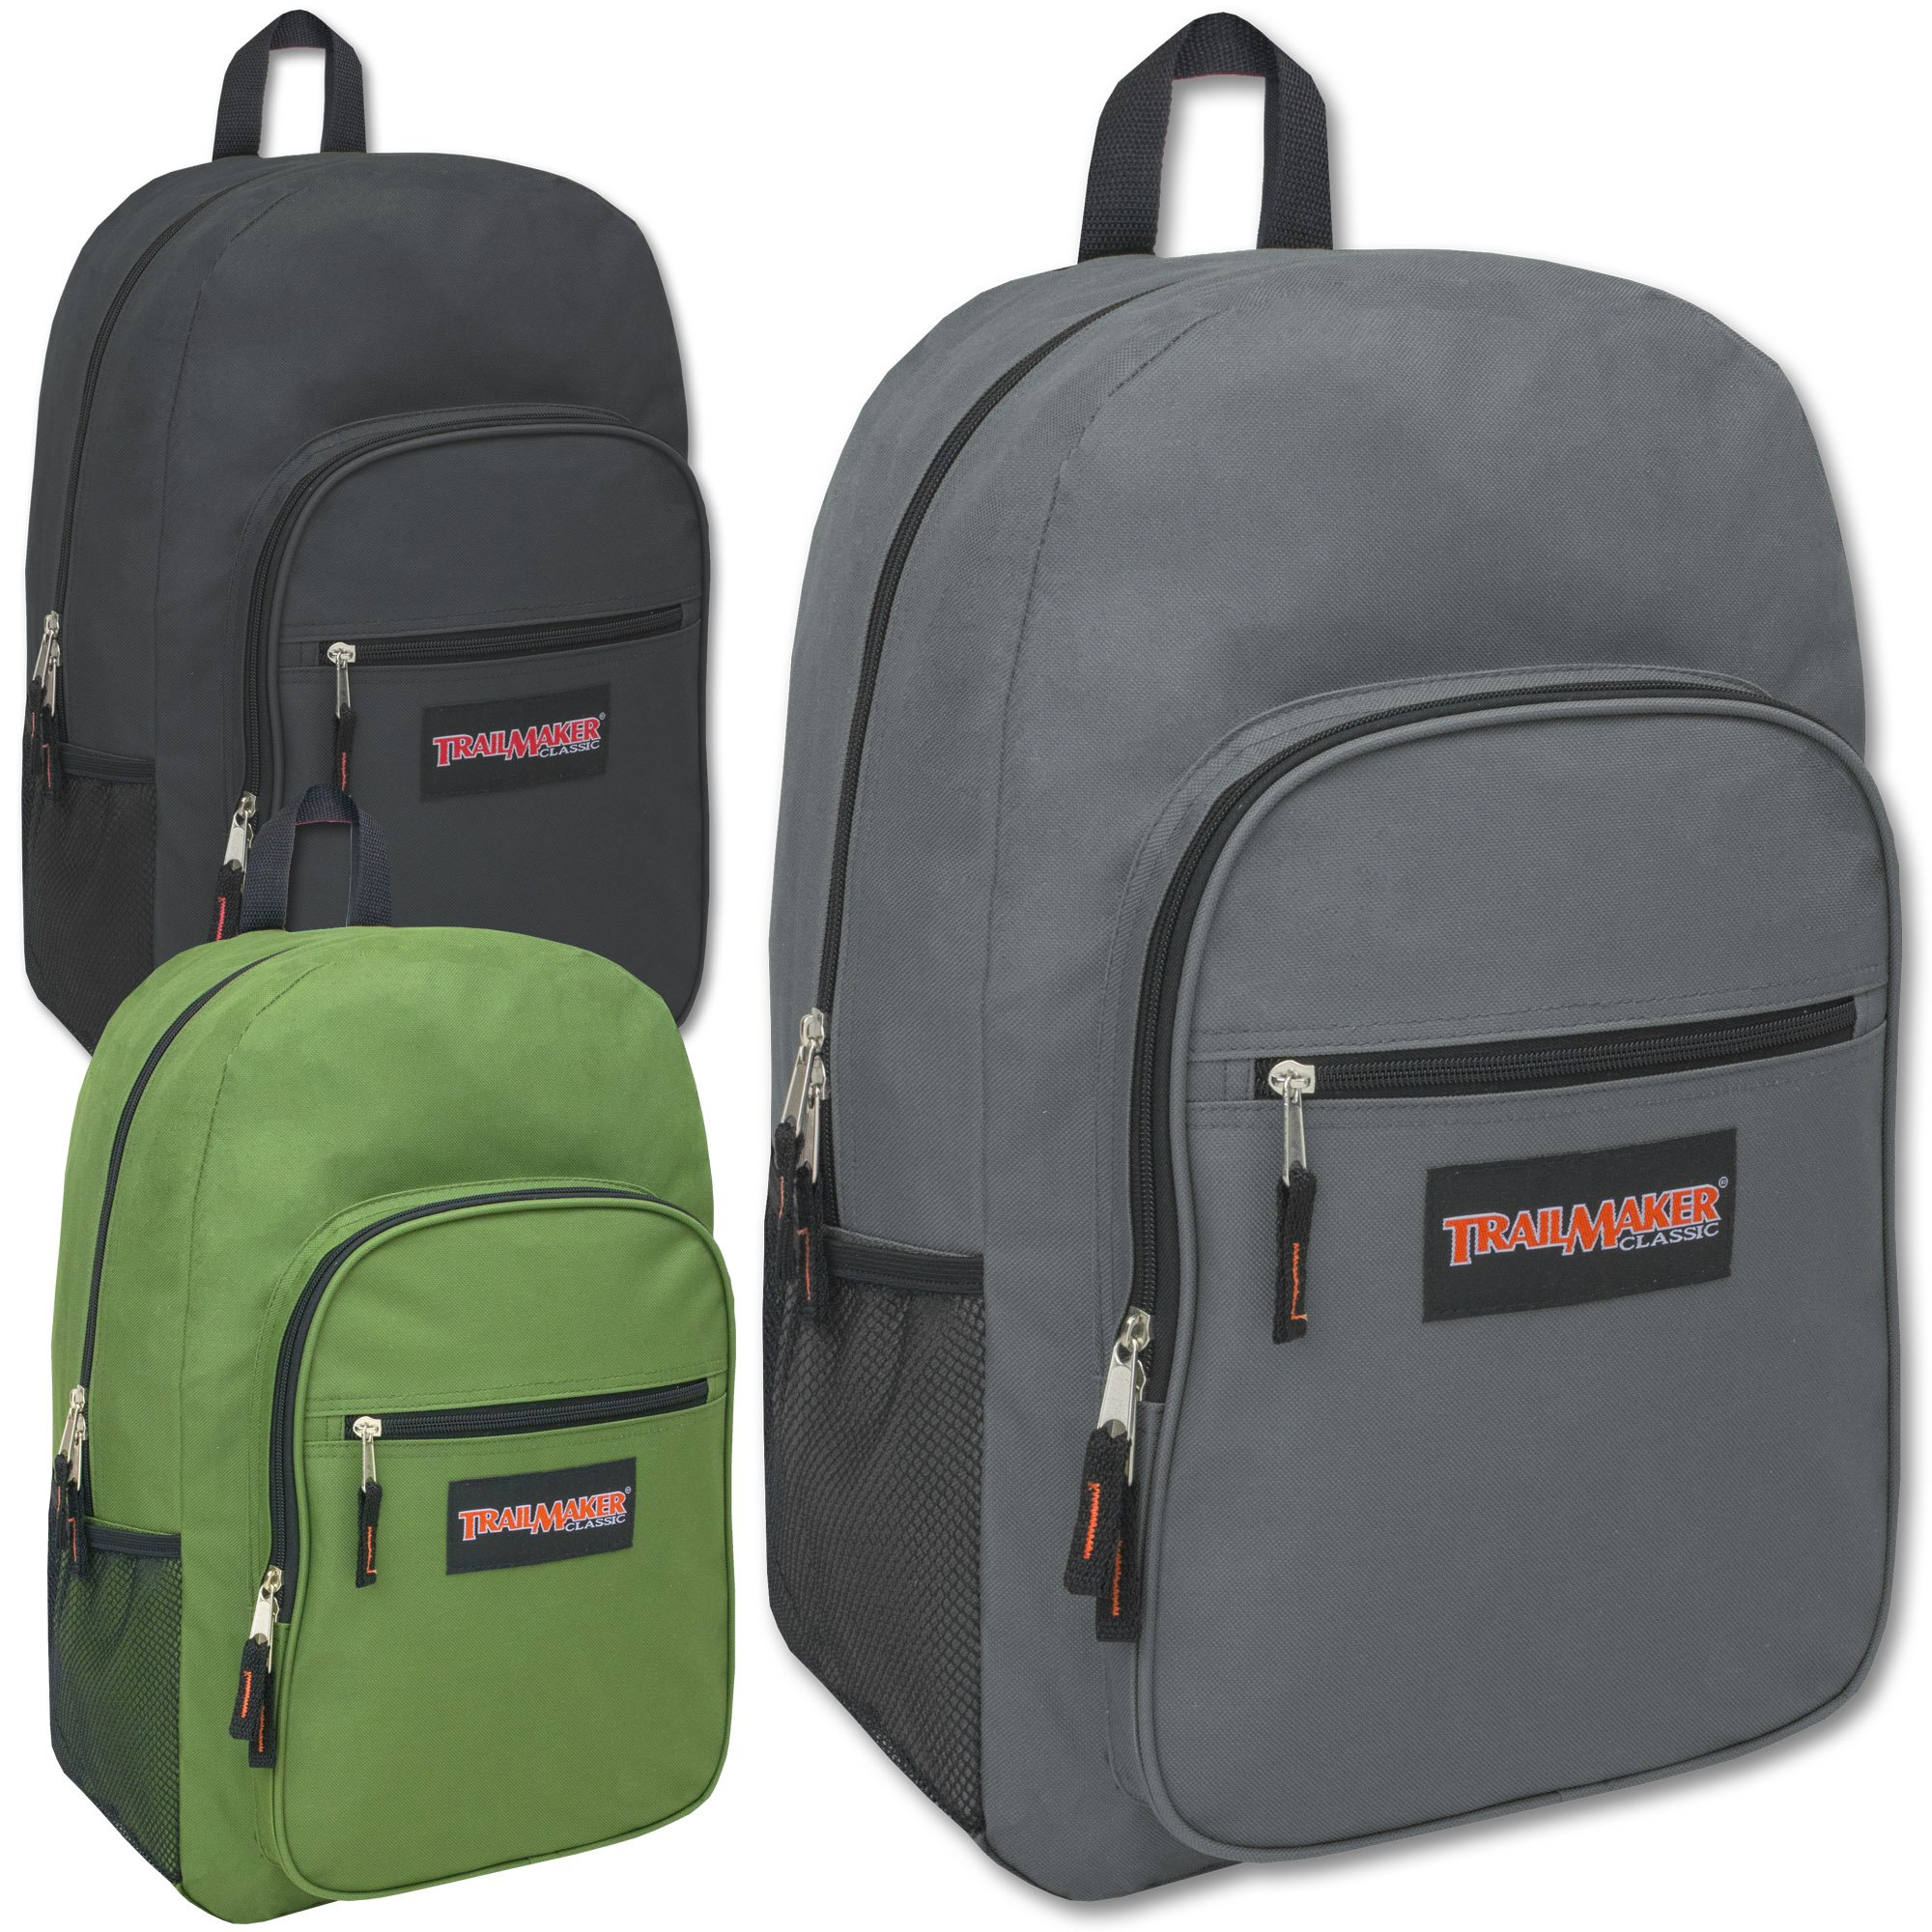 Wholesale Trailmaker Deluxe 19 Inch Backpack Case Pack 24